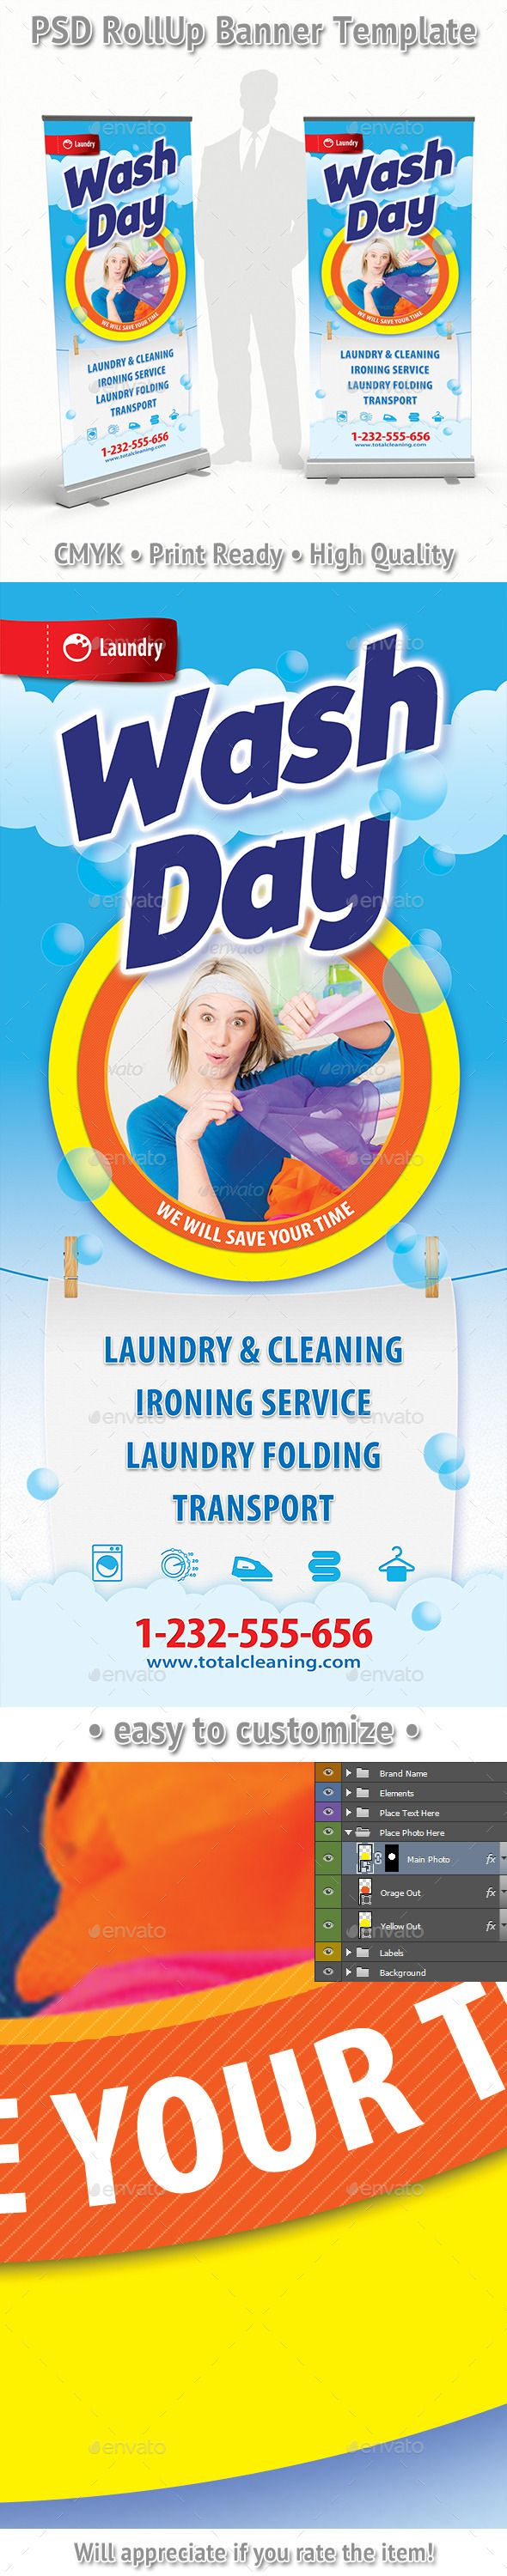 Laundry Service Rollup Banner 68